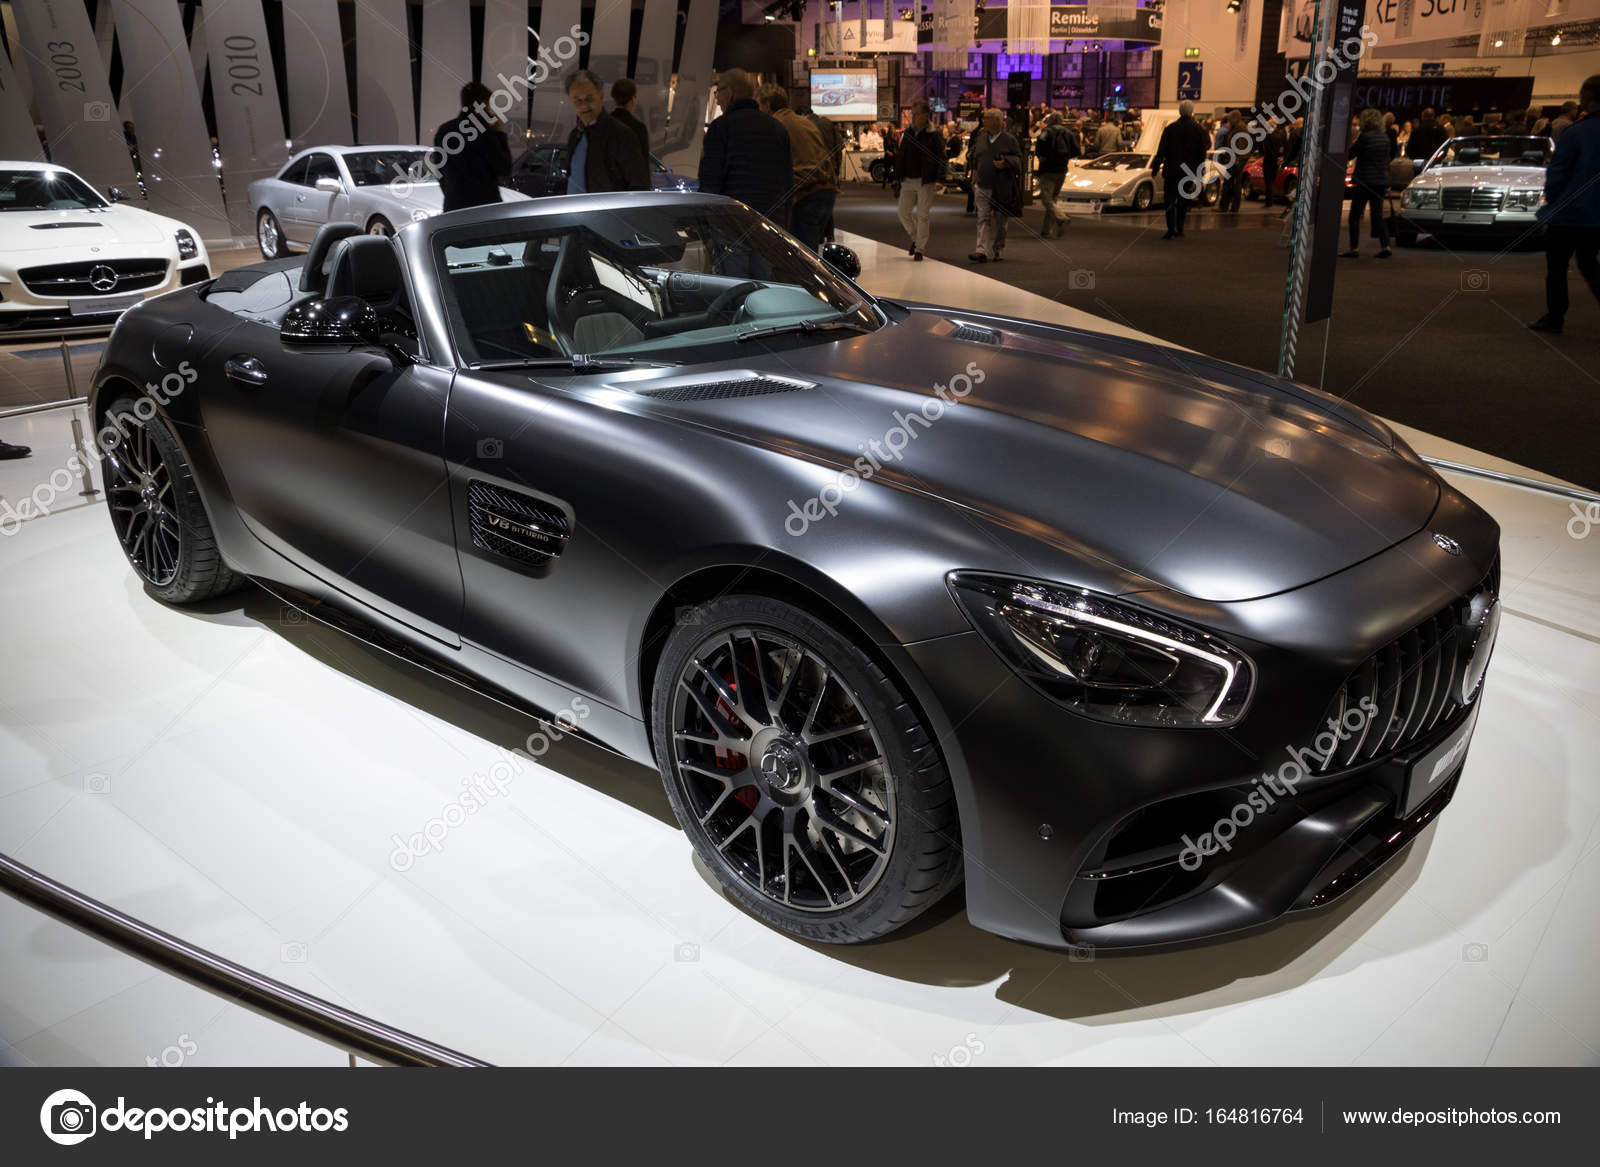 2017 mercedes benz amg gt 50 edition sports car stock. Black Bedroom Furniture Sets. Home Design Ideas